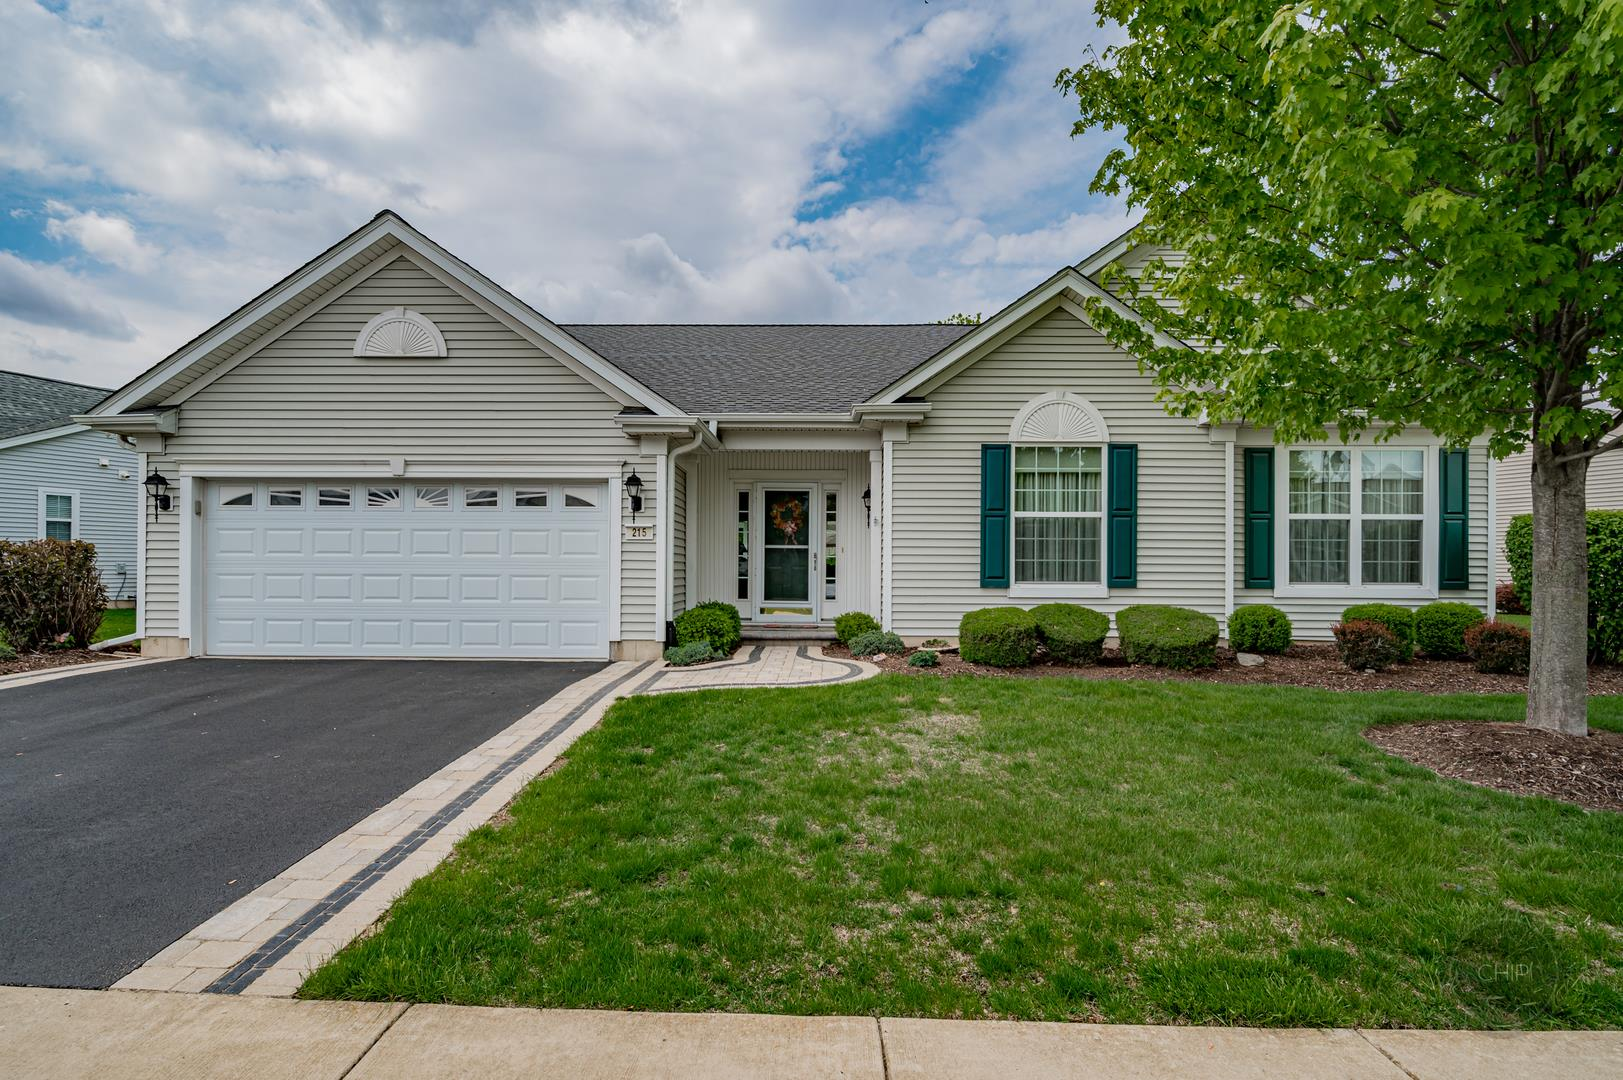 215 Honors Drive, Shorewood, IL 60404 - #: 11087641